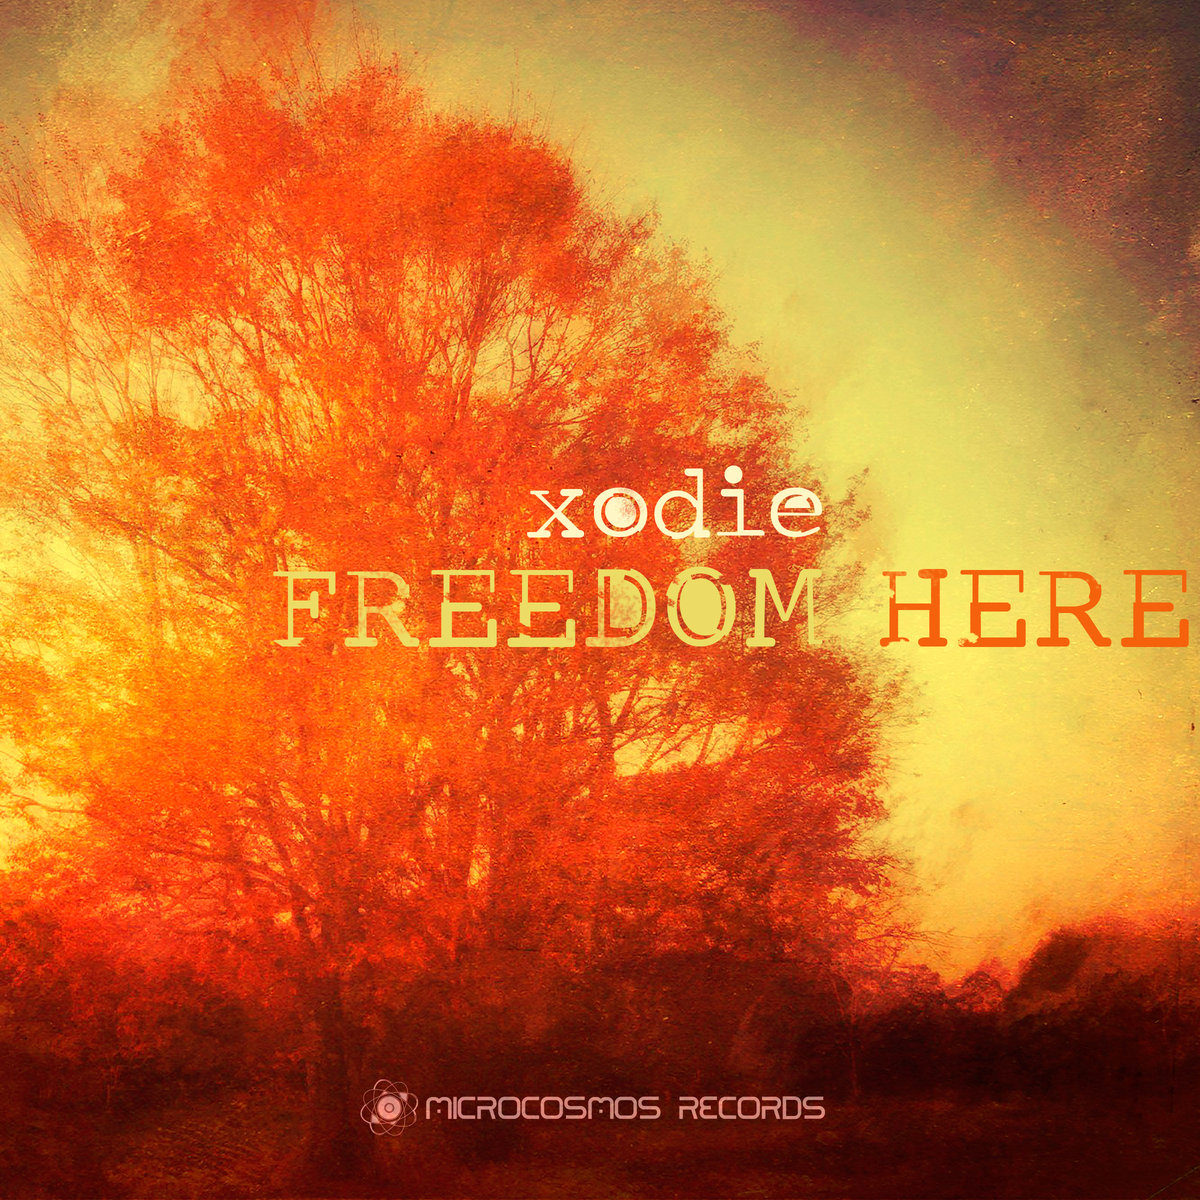 Xodie - Tofreedom @ 'Freedom Here' album (ambient, chill-out)